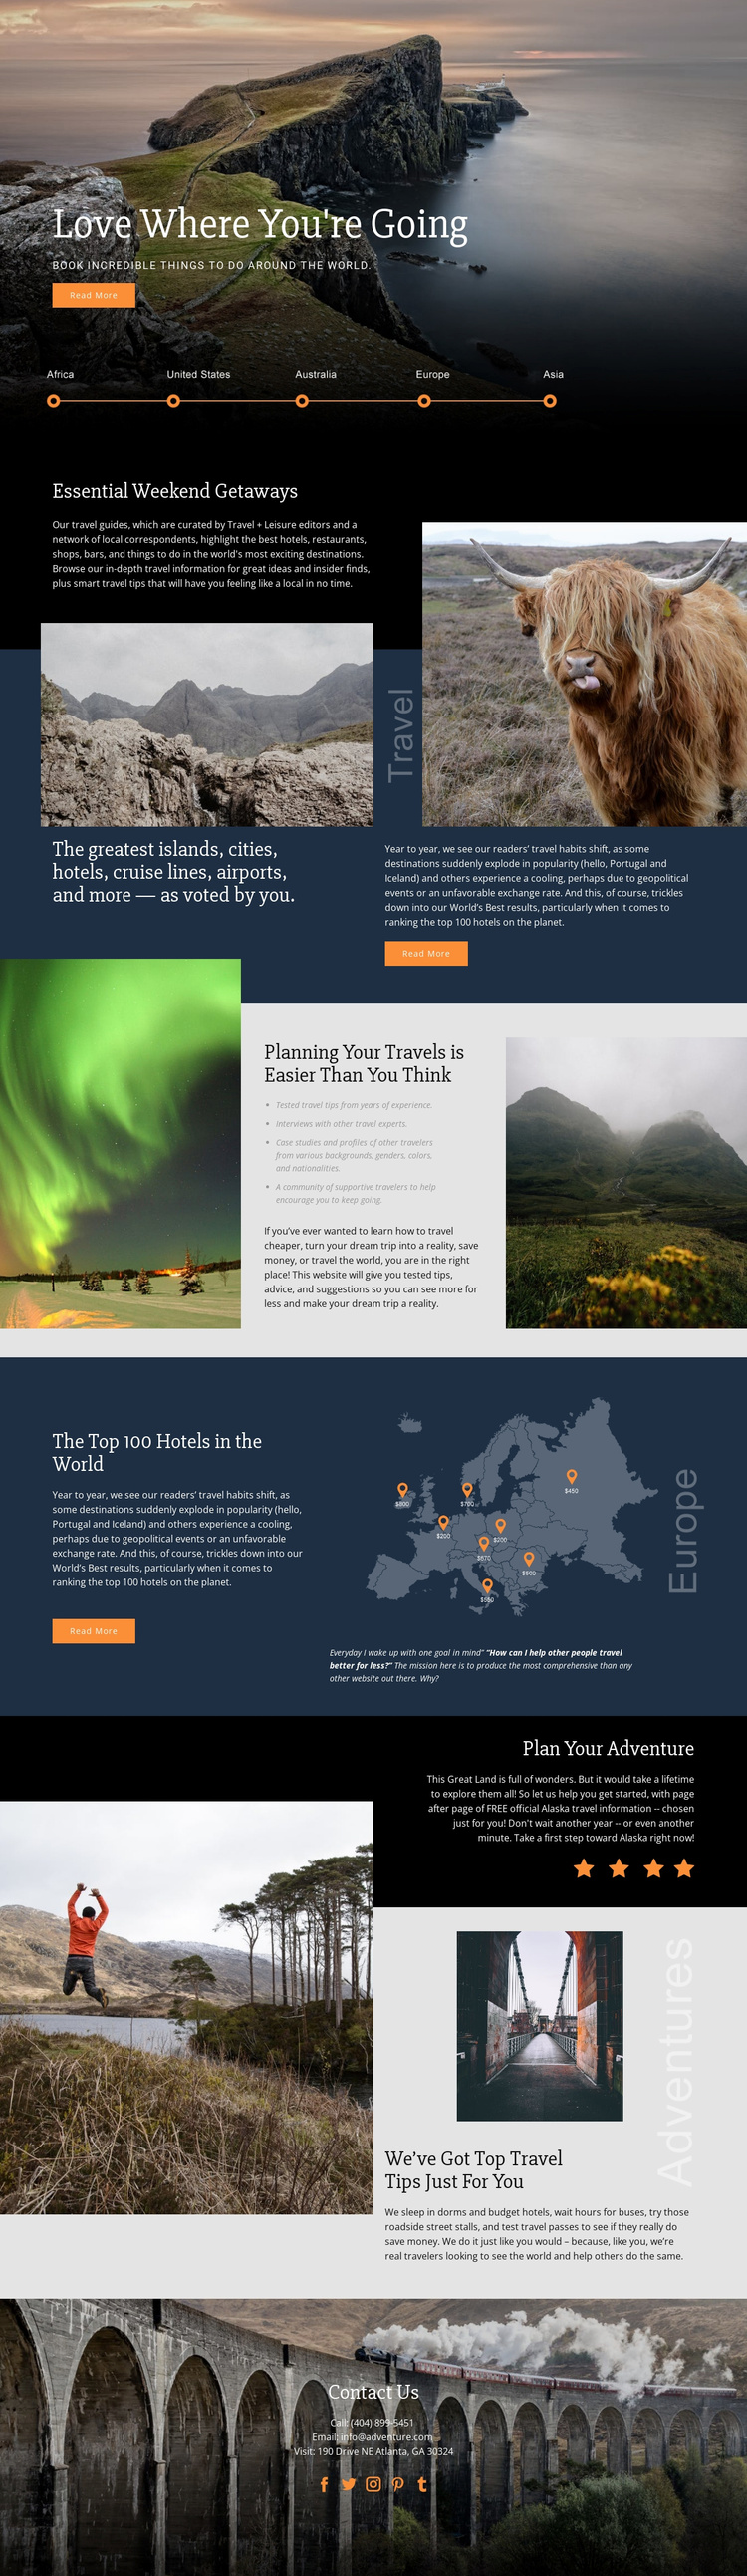 Planning Your Travel Website Template